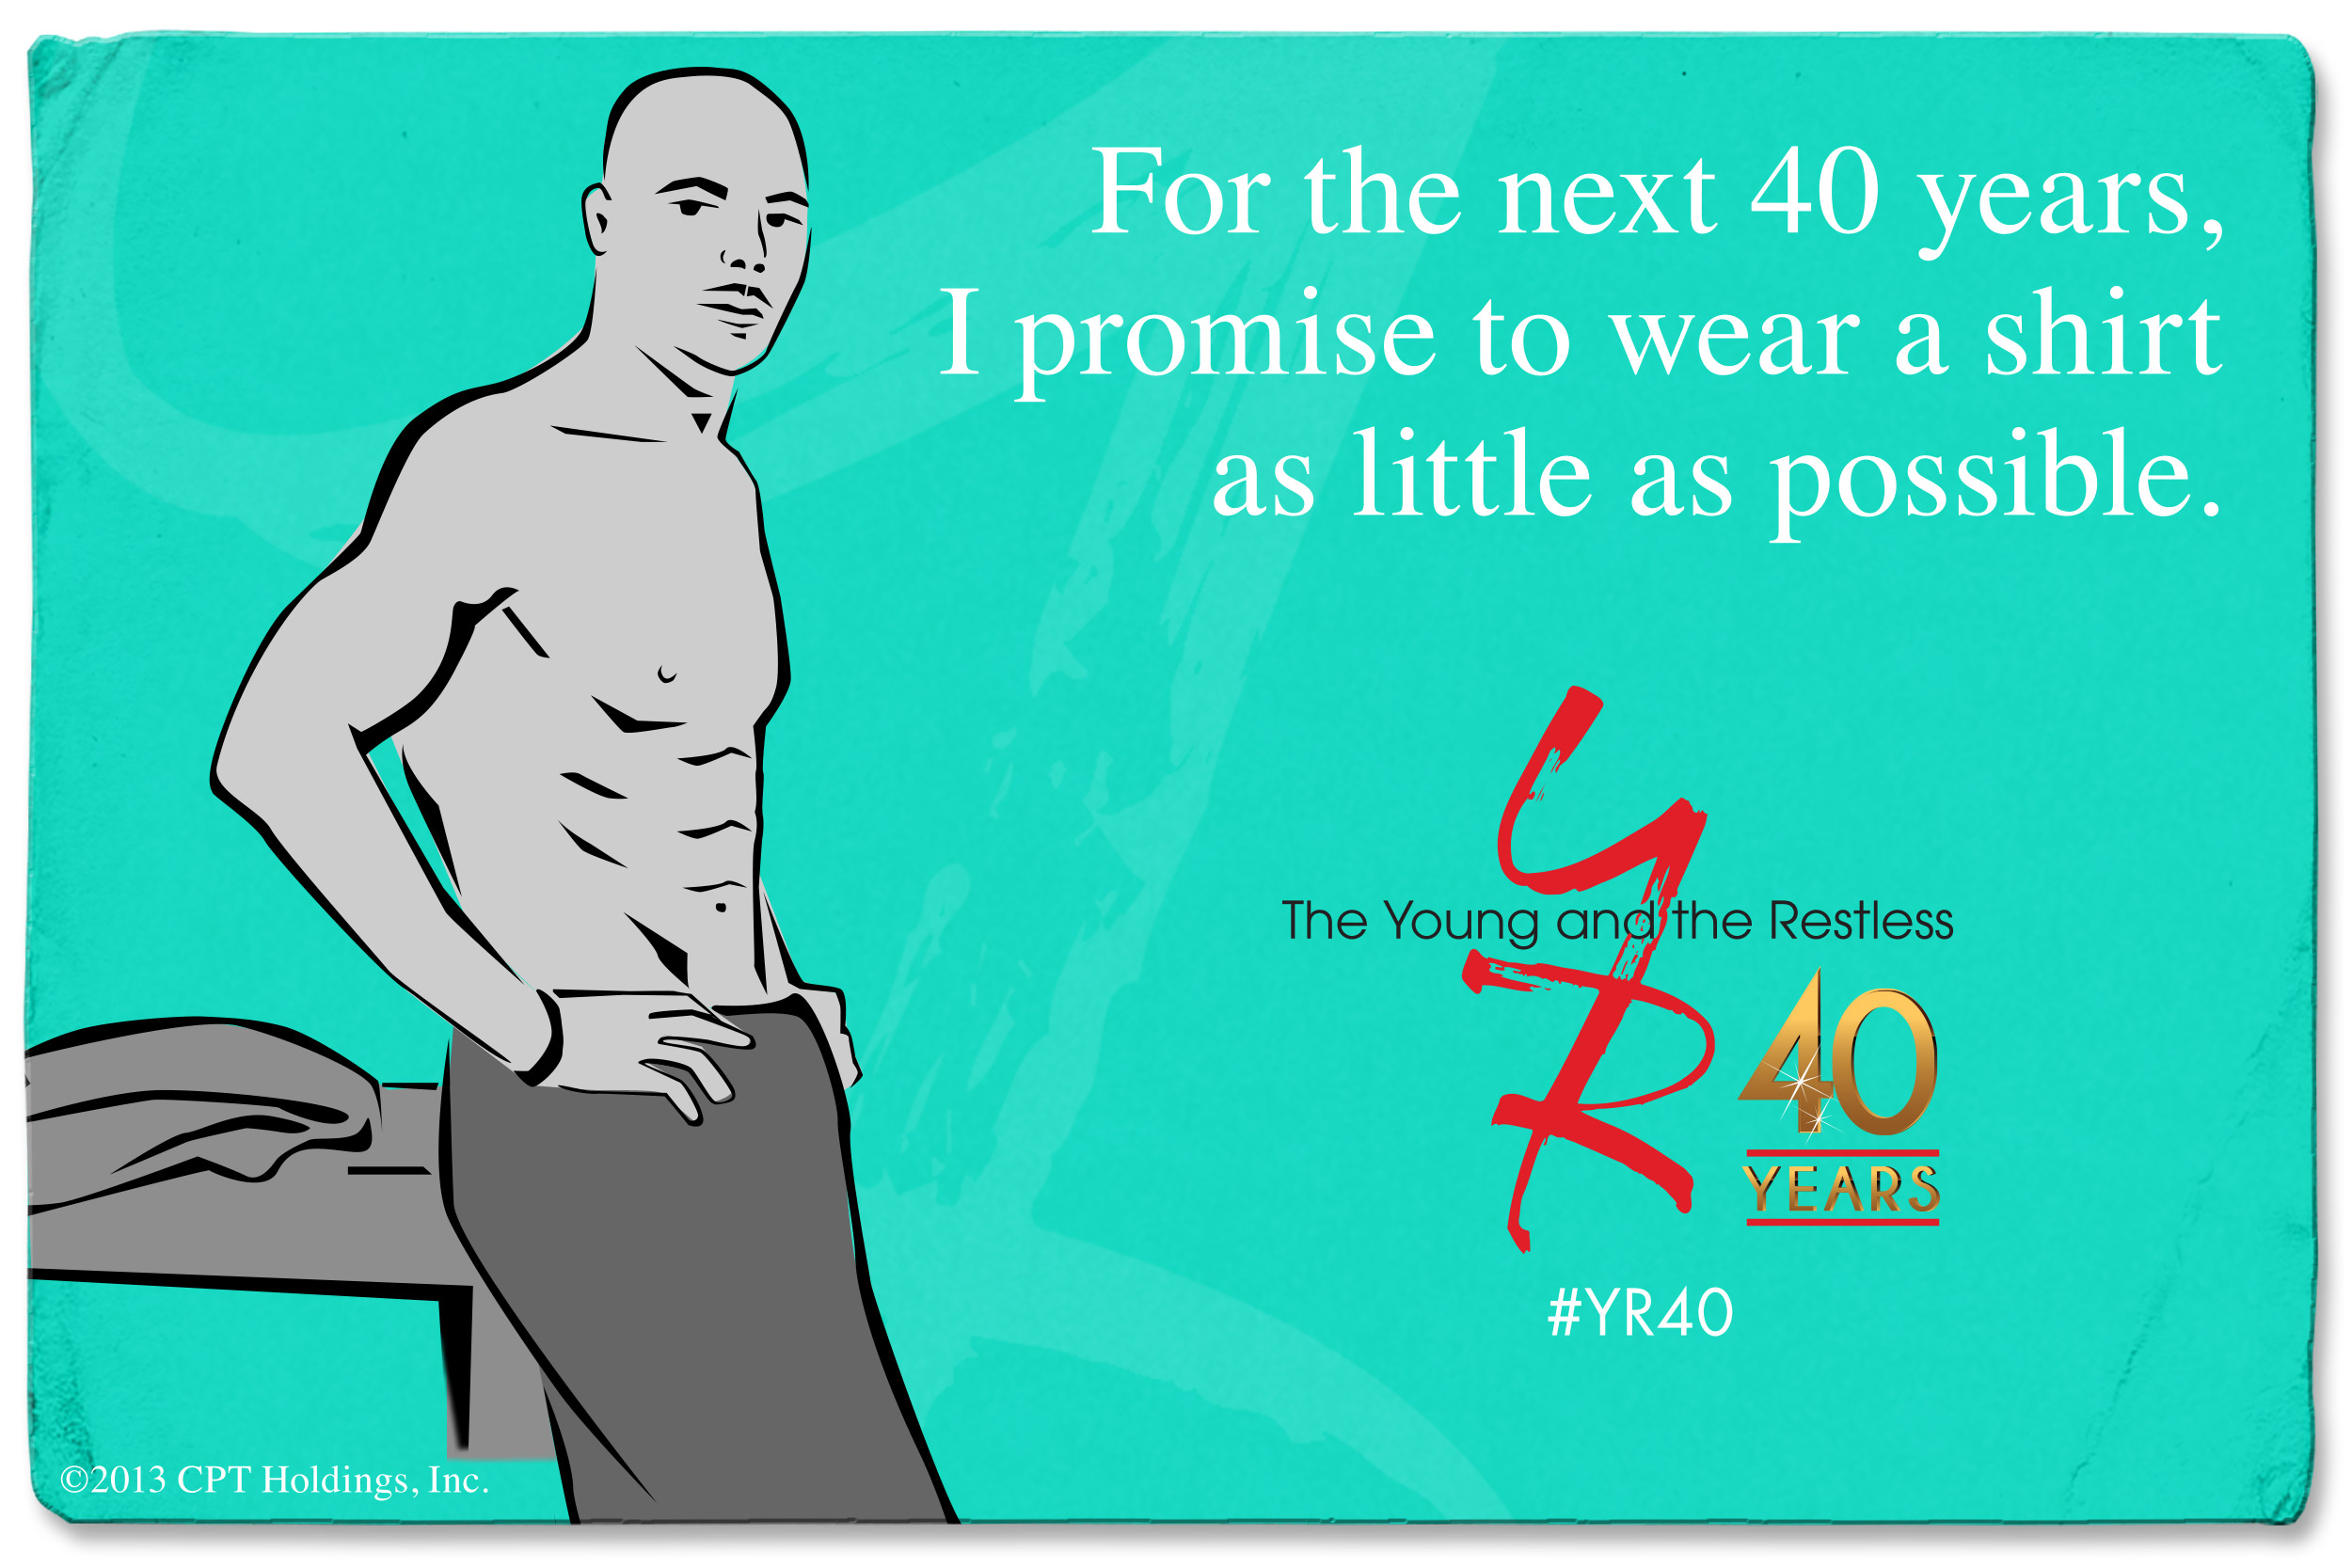 Shirtless Promise